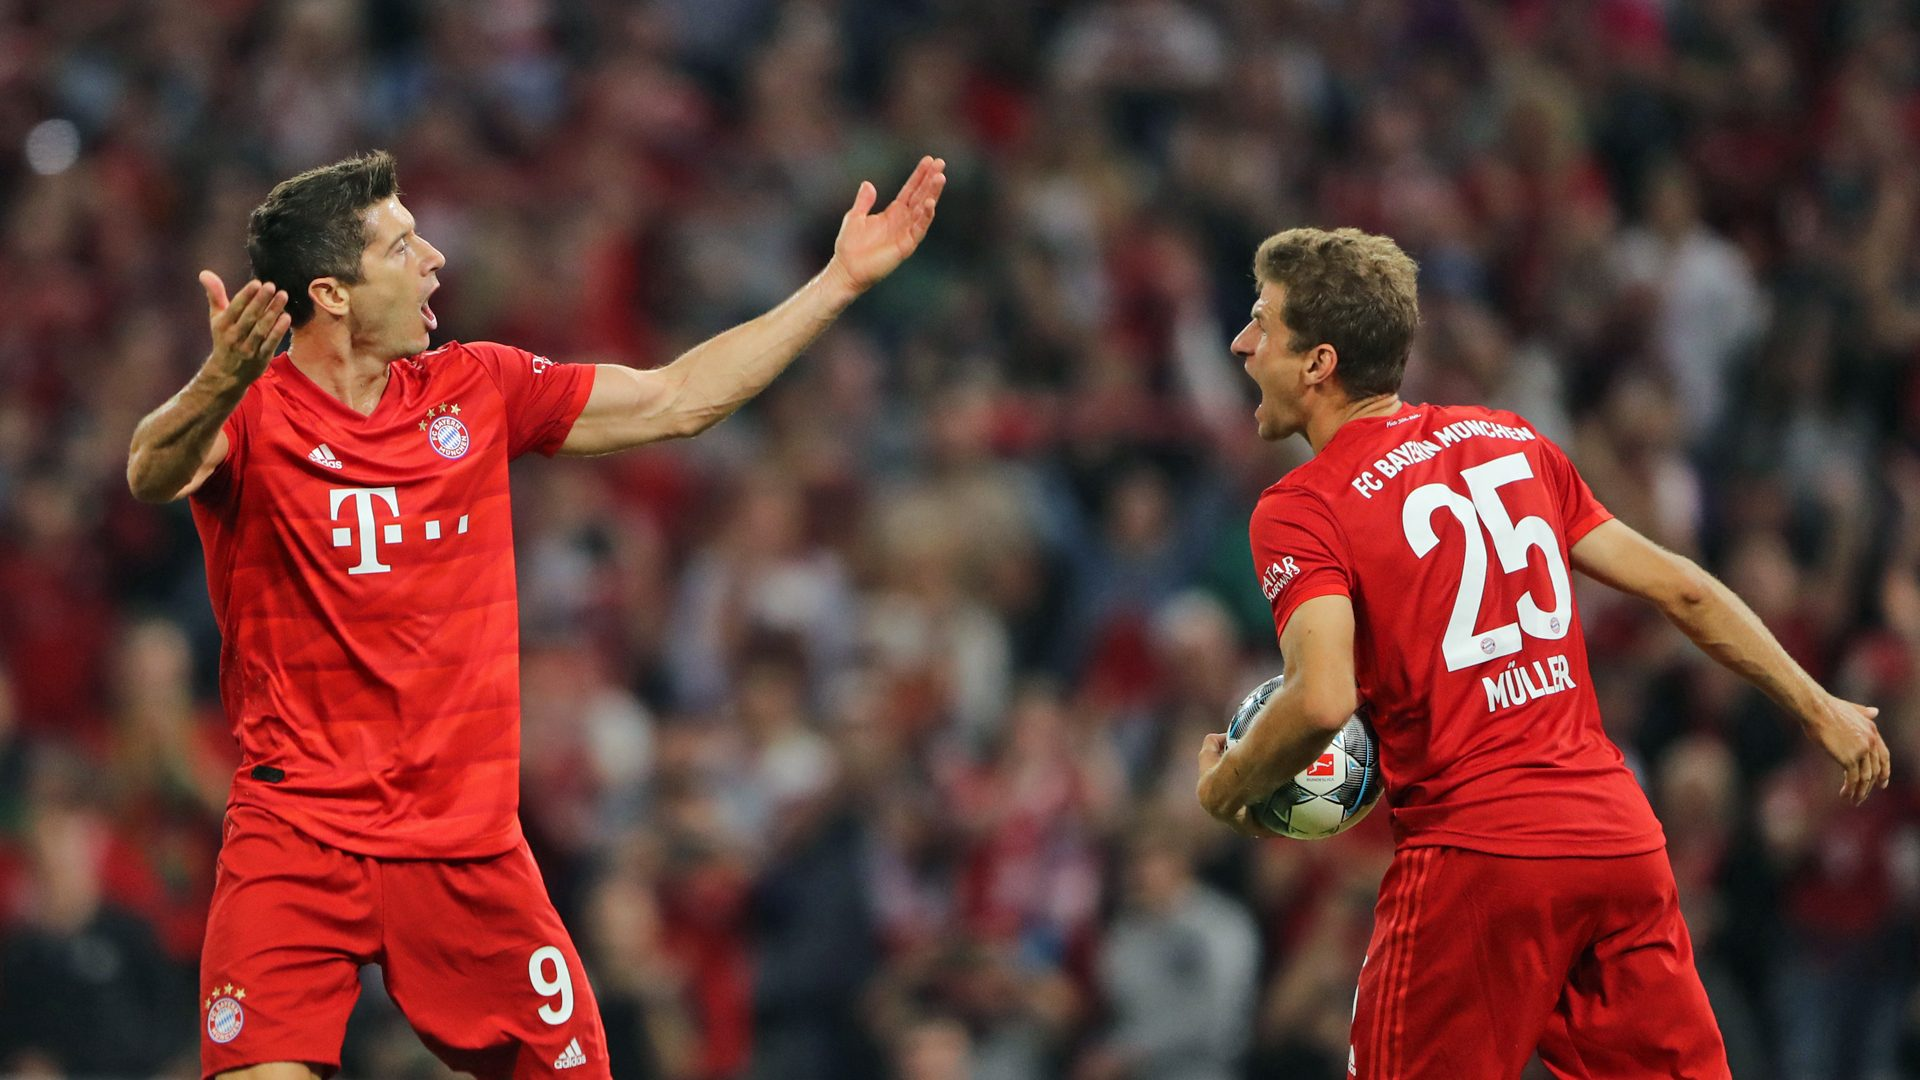 Bundesliga | Thomas Müller: assisting more goals for Robert Lewandowski than any other Bayern Munich player